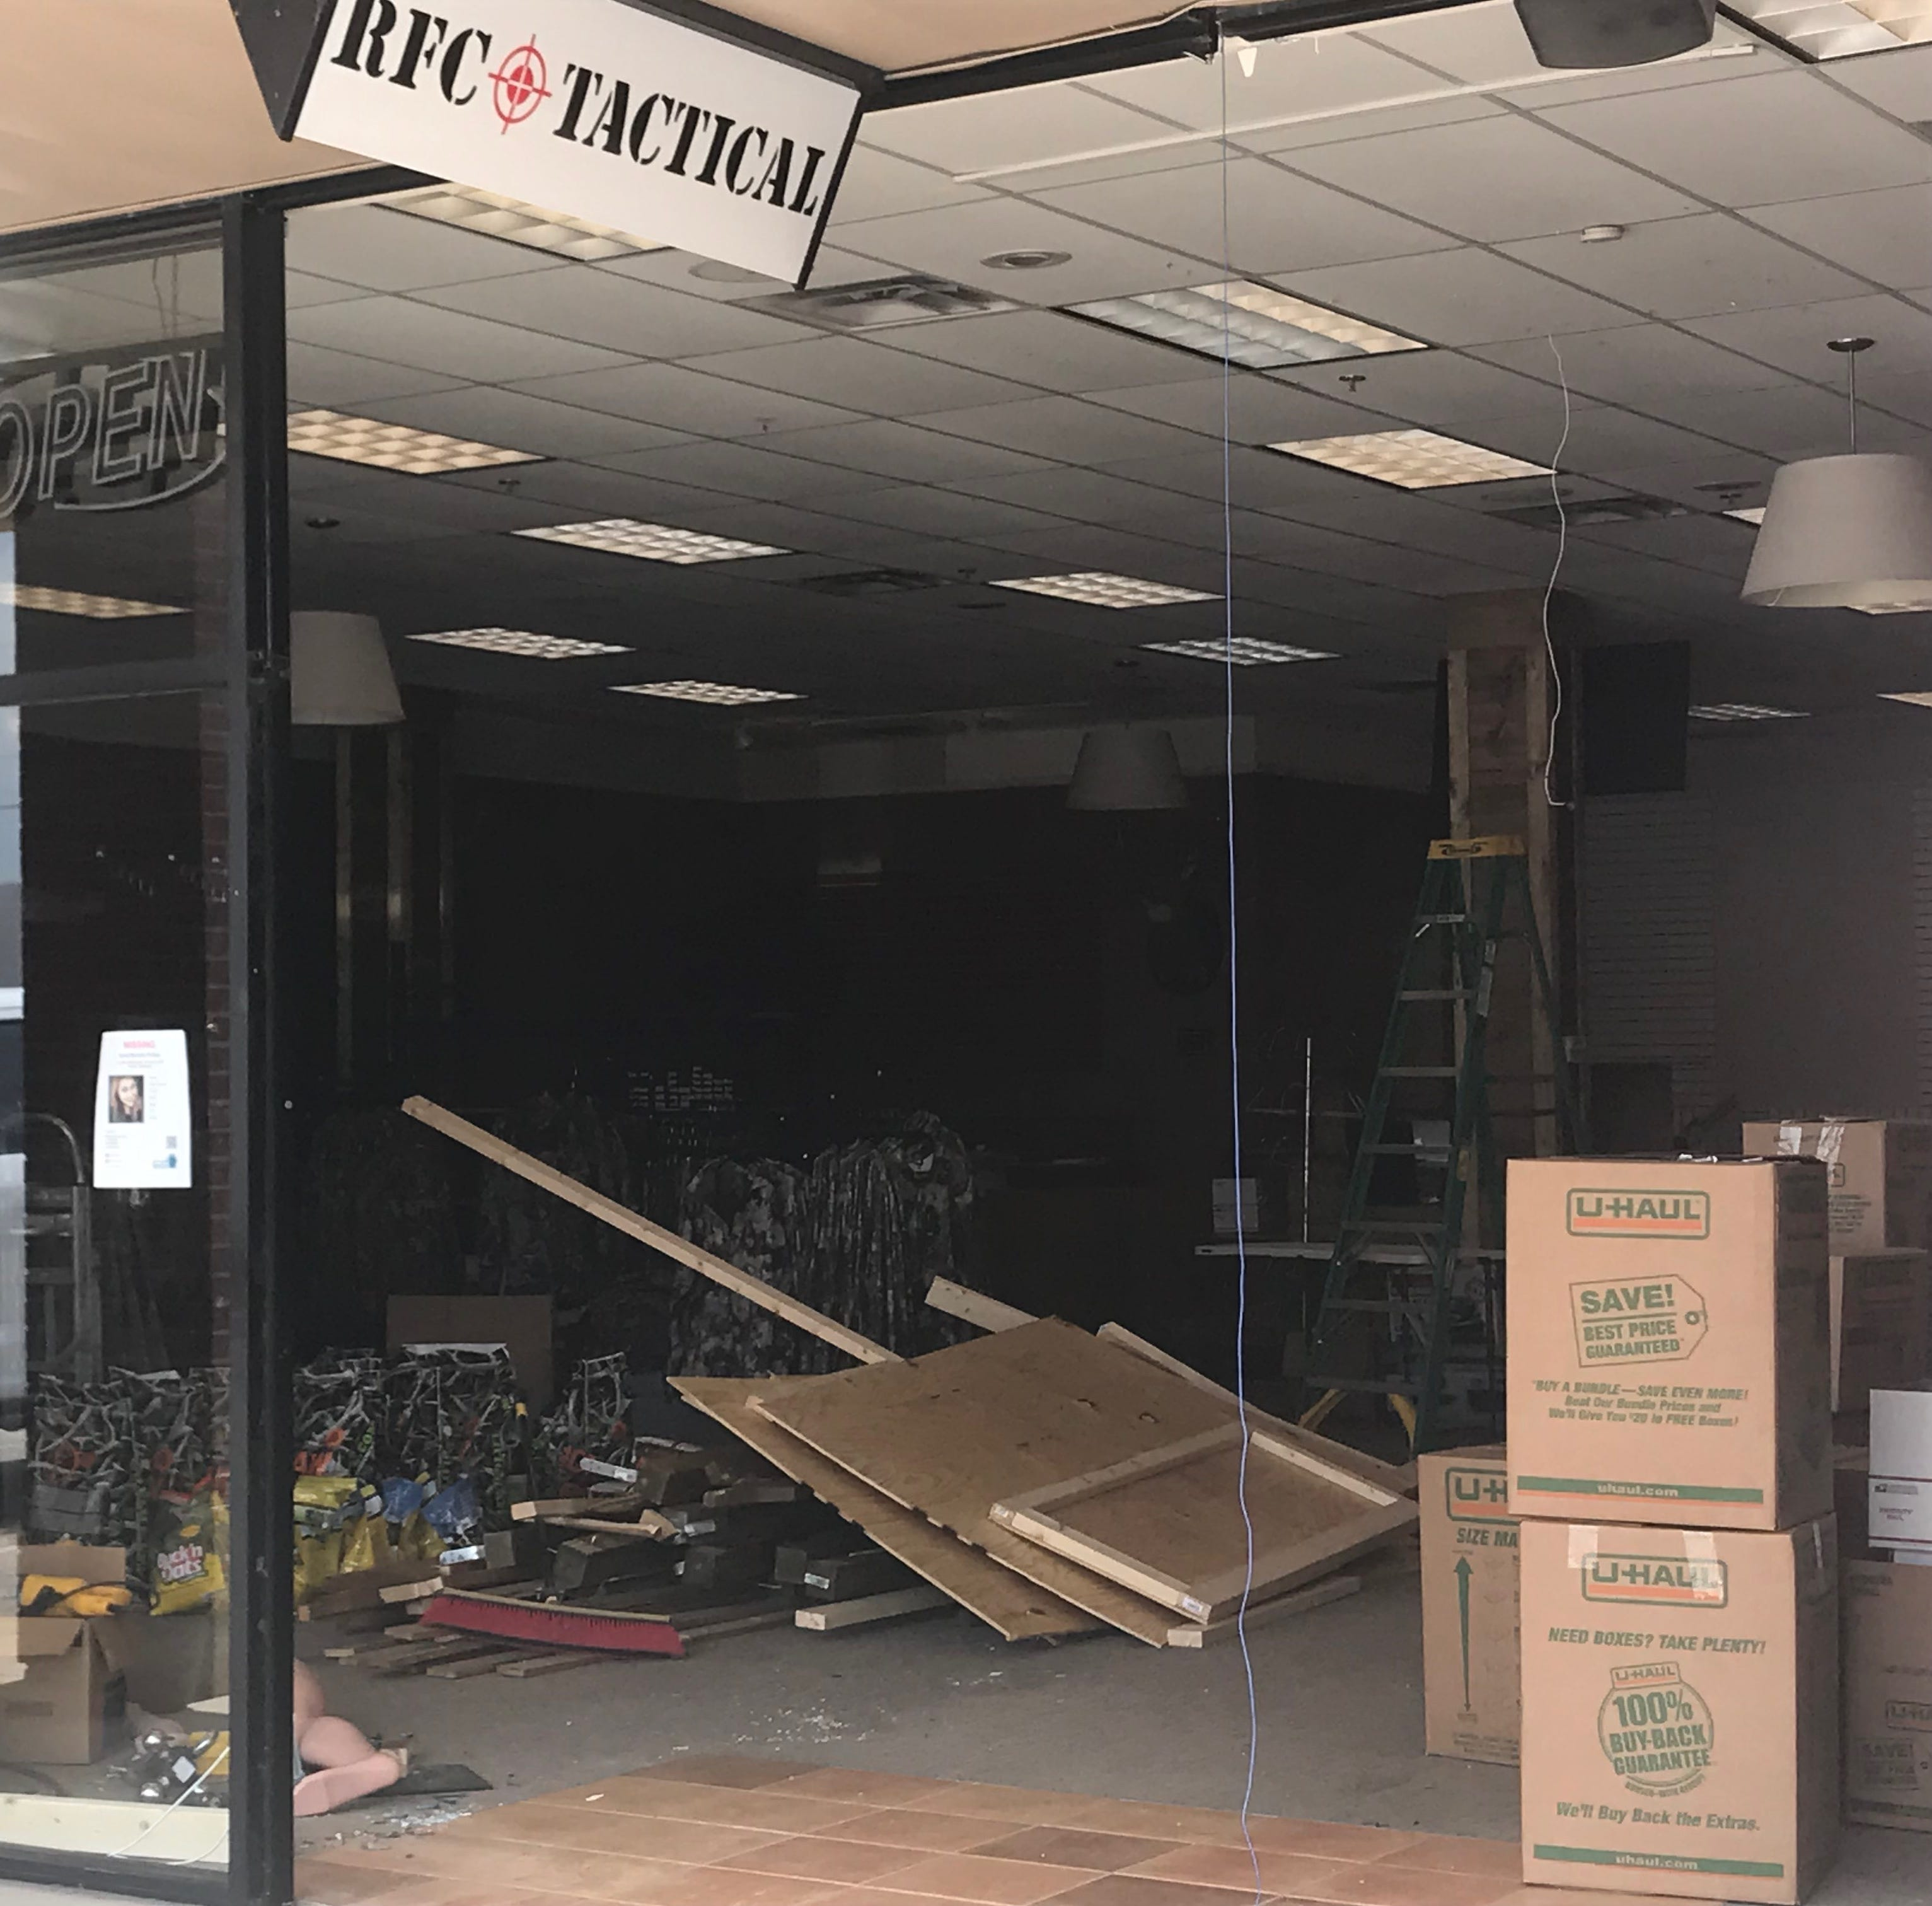 RFC Tactical gun shop closes; proceeds to fund outstanding orders from overwhelmed Rustic Flag business